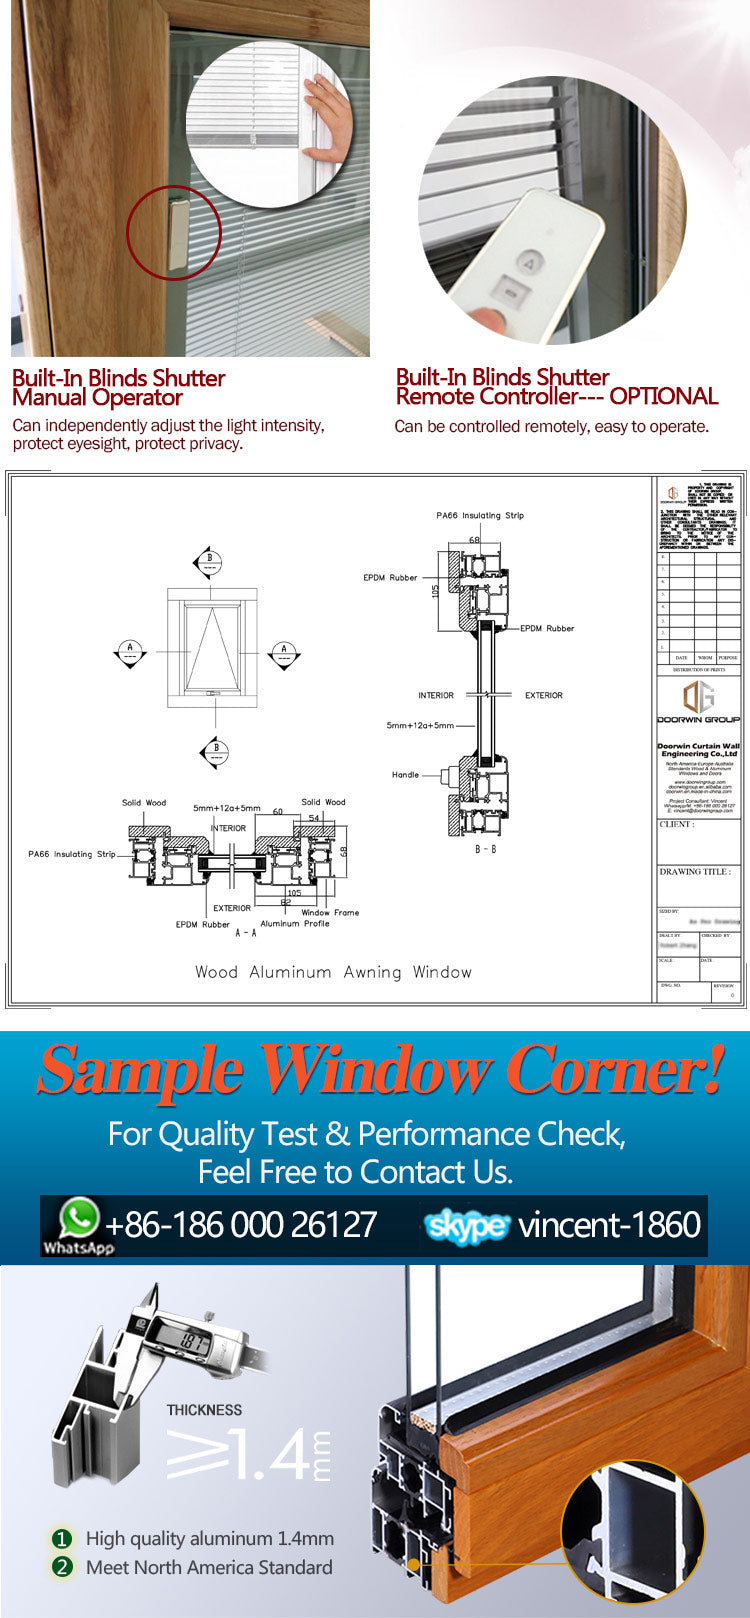 awning window with built in shutter-02